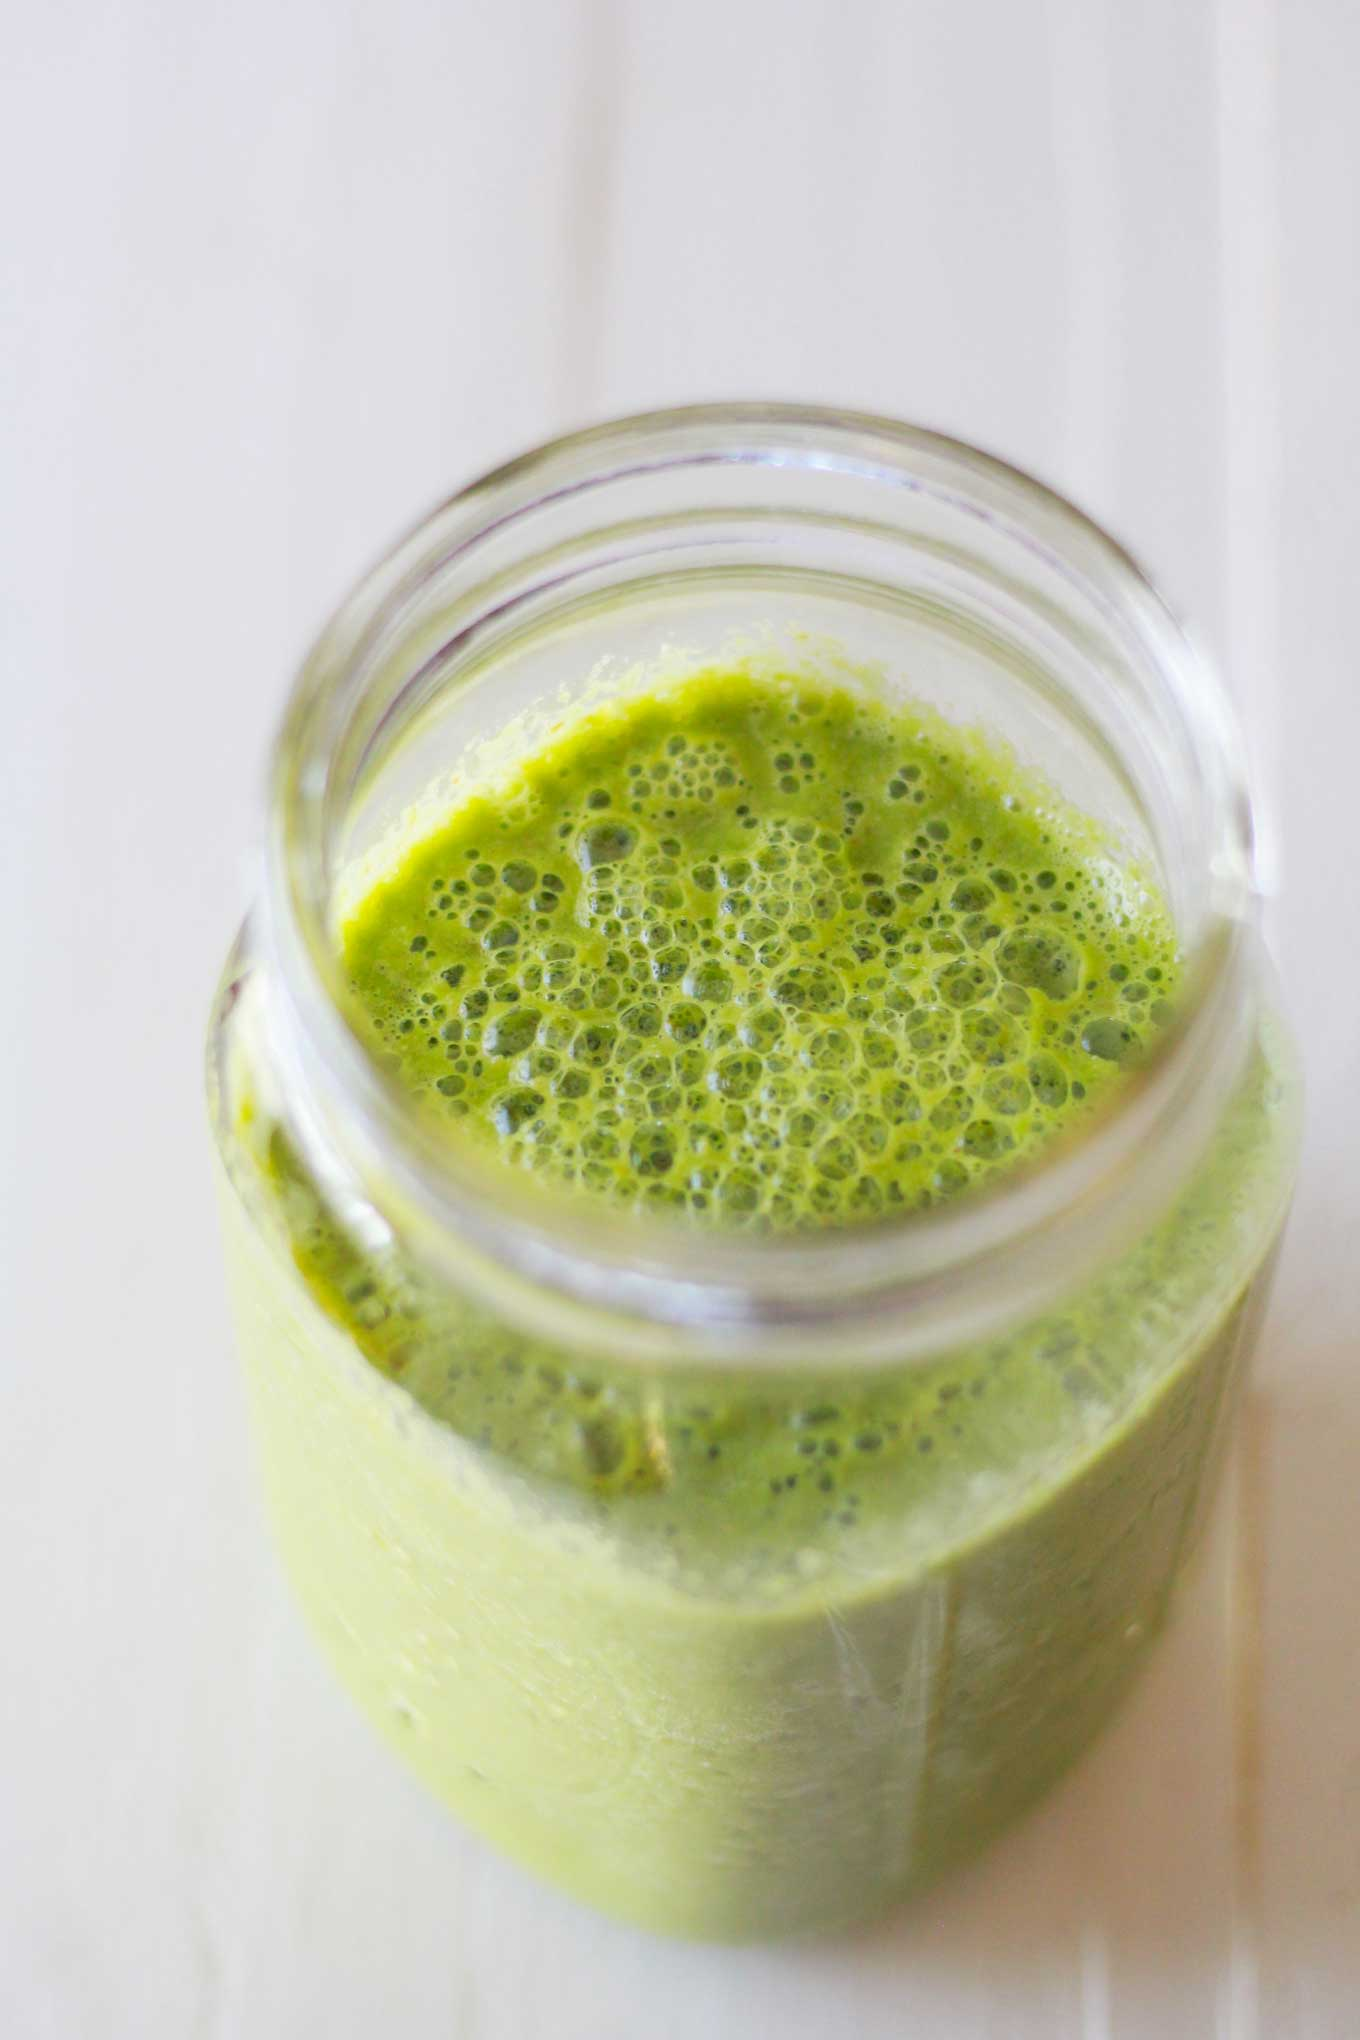 Perfect Green Smoothie | Green smoothie in mason jar | Vegan green smoothie recipe | http://www.eatwithinyourmeans.com/